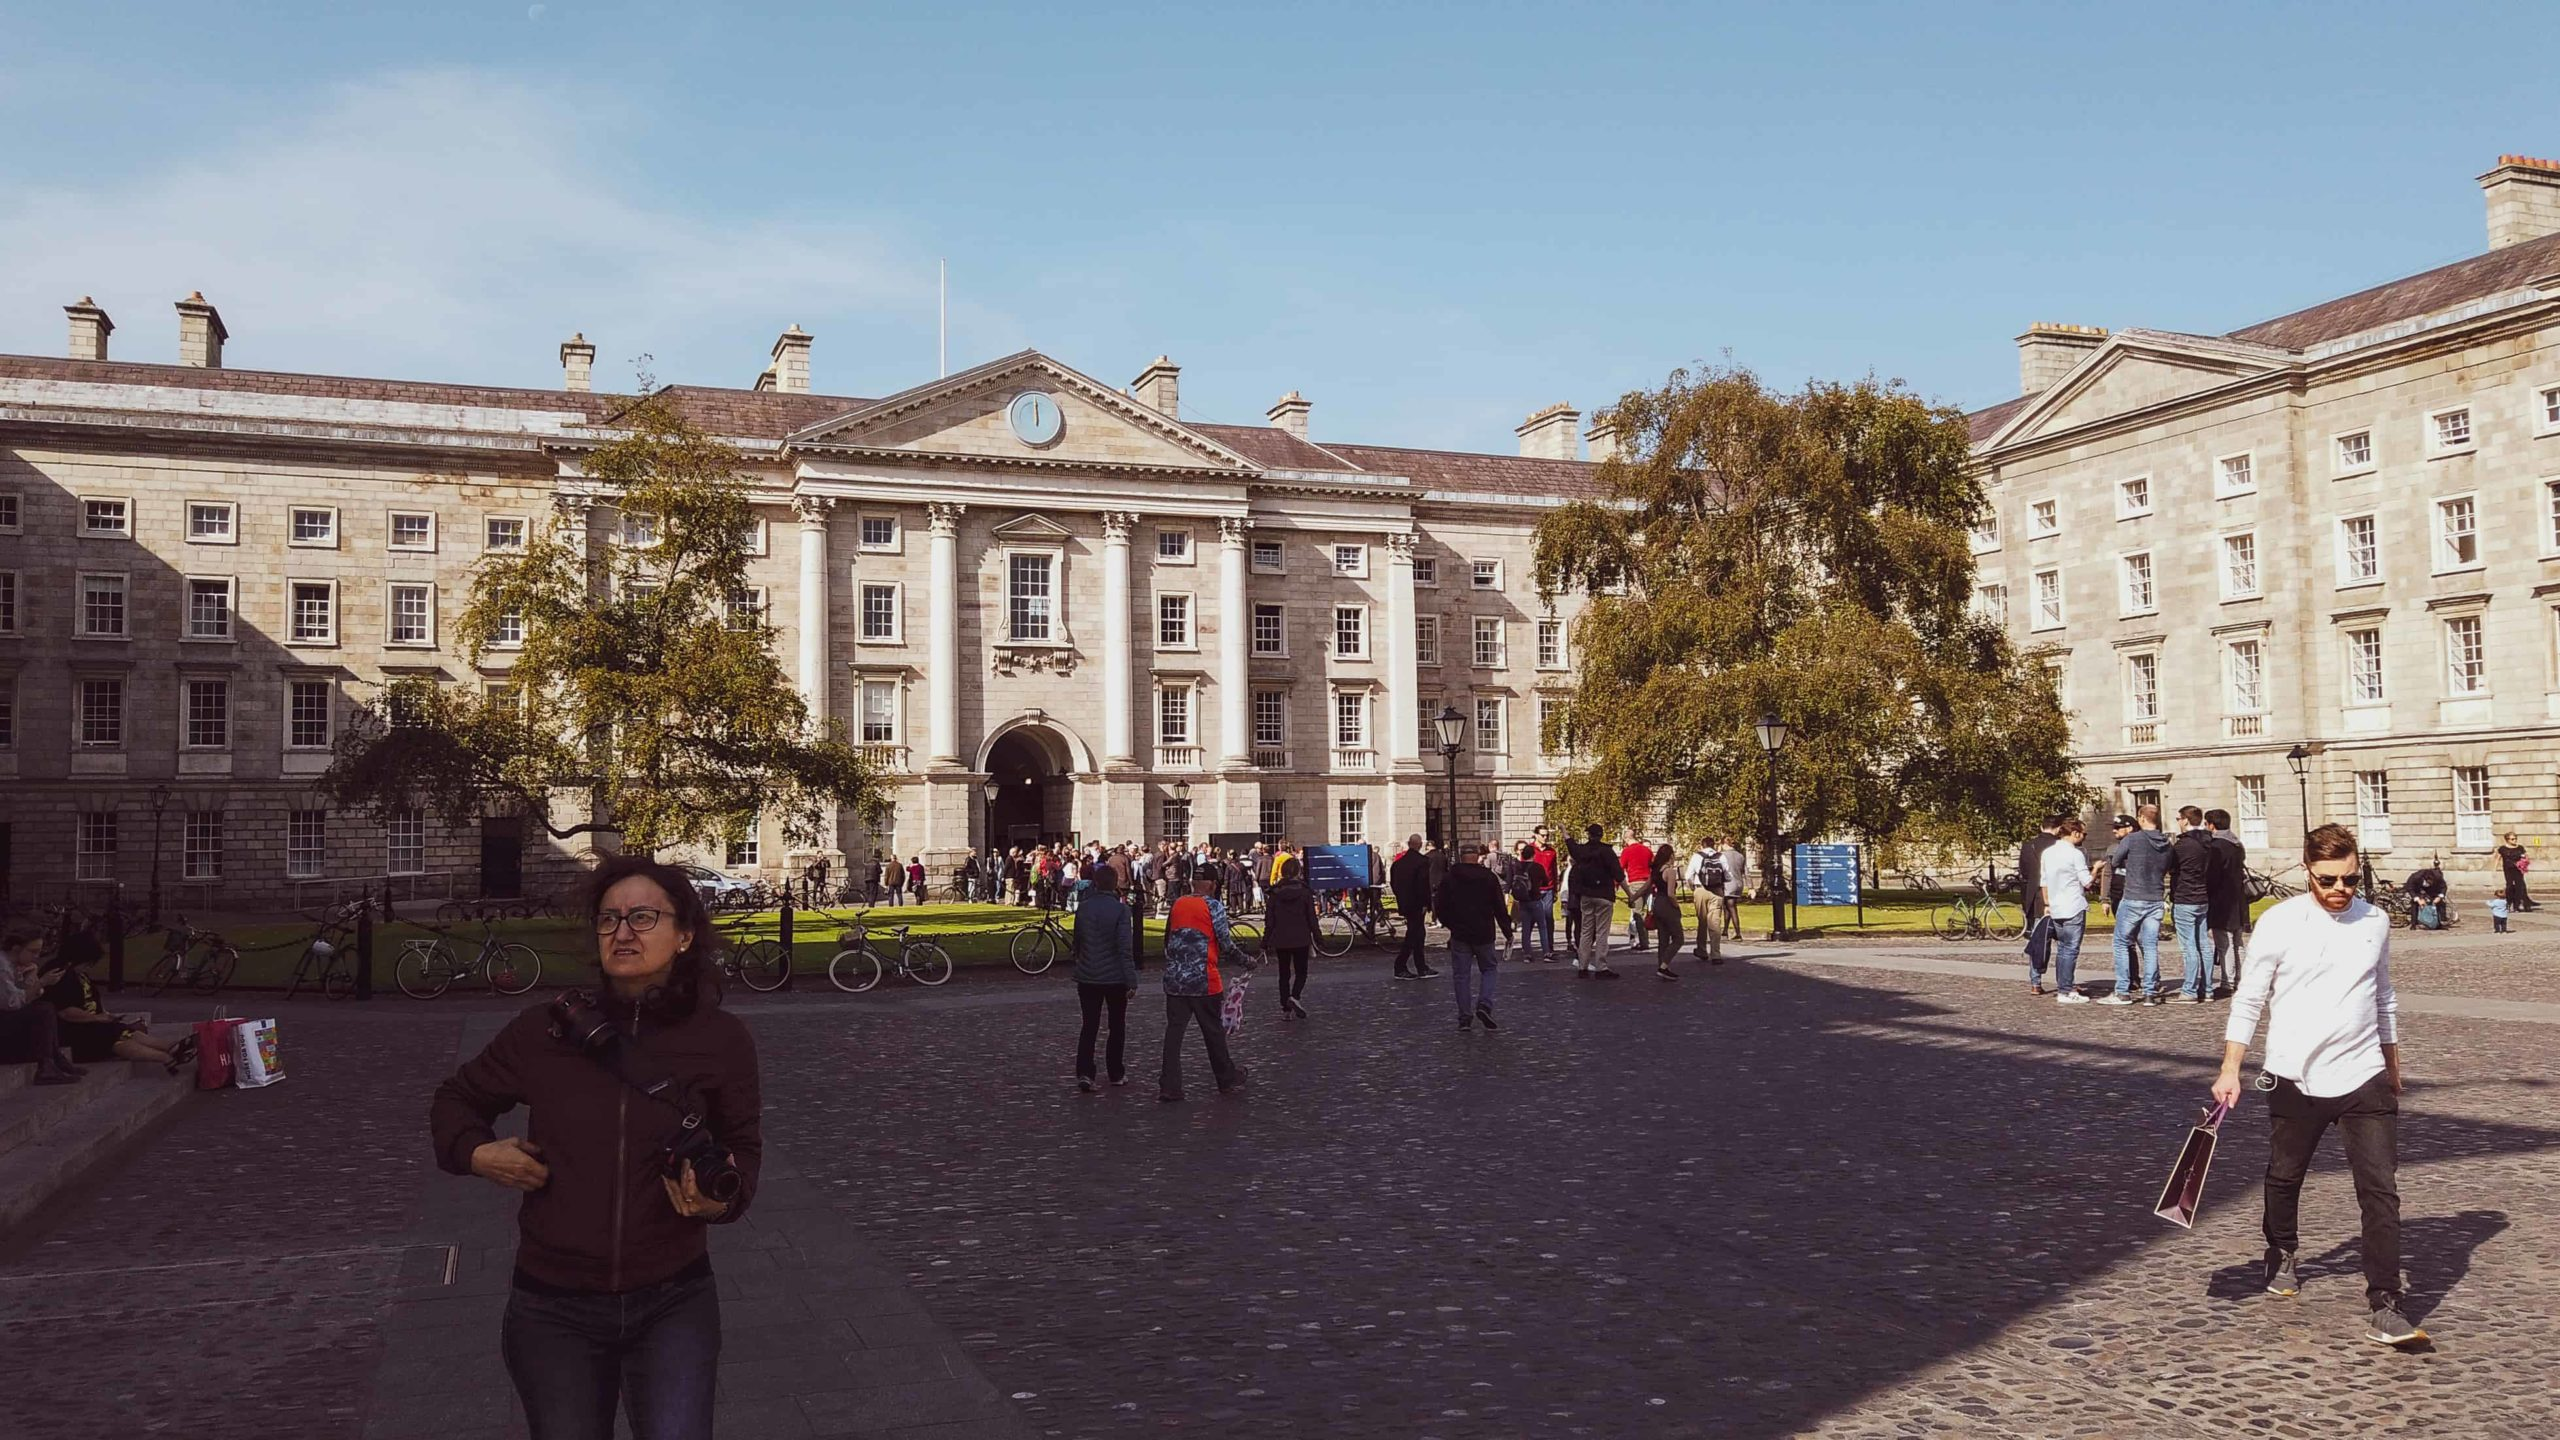 2 days in ireland - trinity college